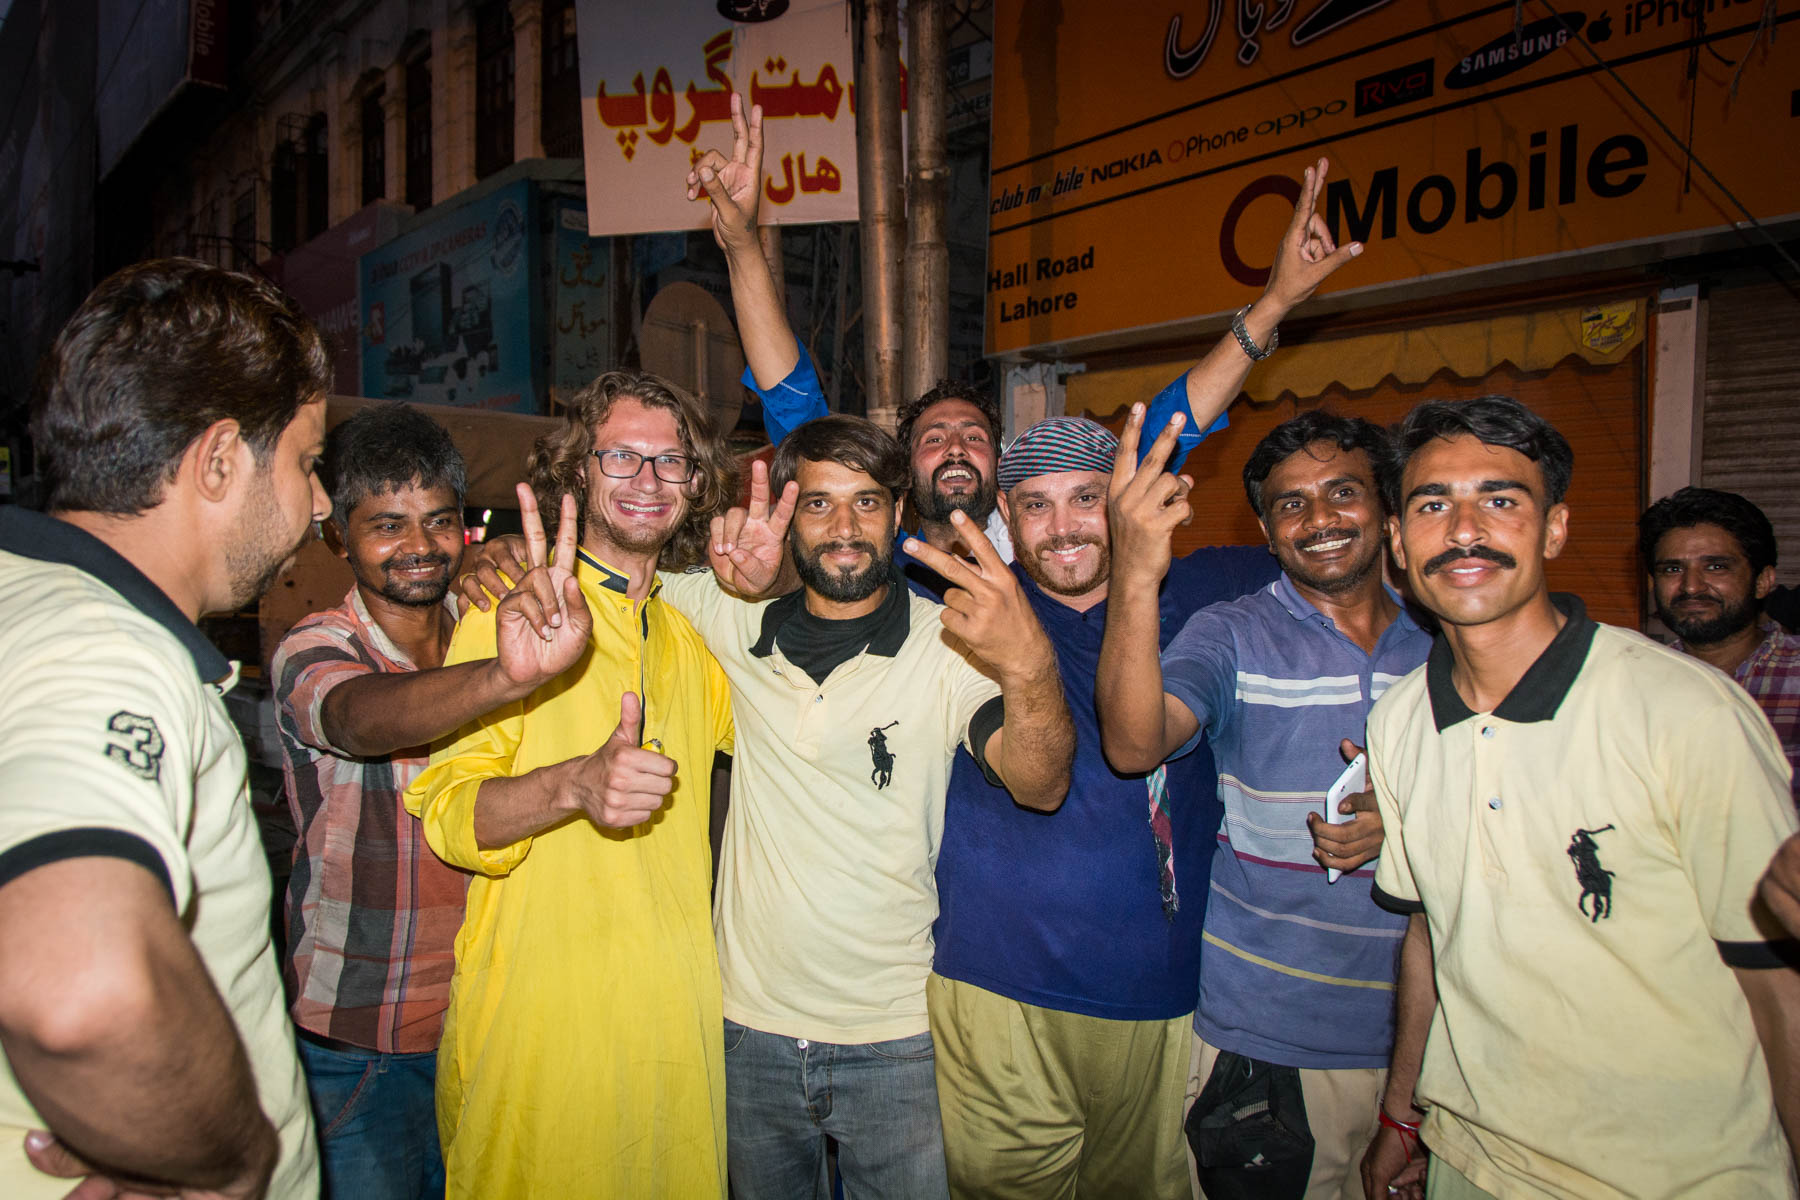 Smiling faces on the streets of Karachi, Pakistan